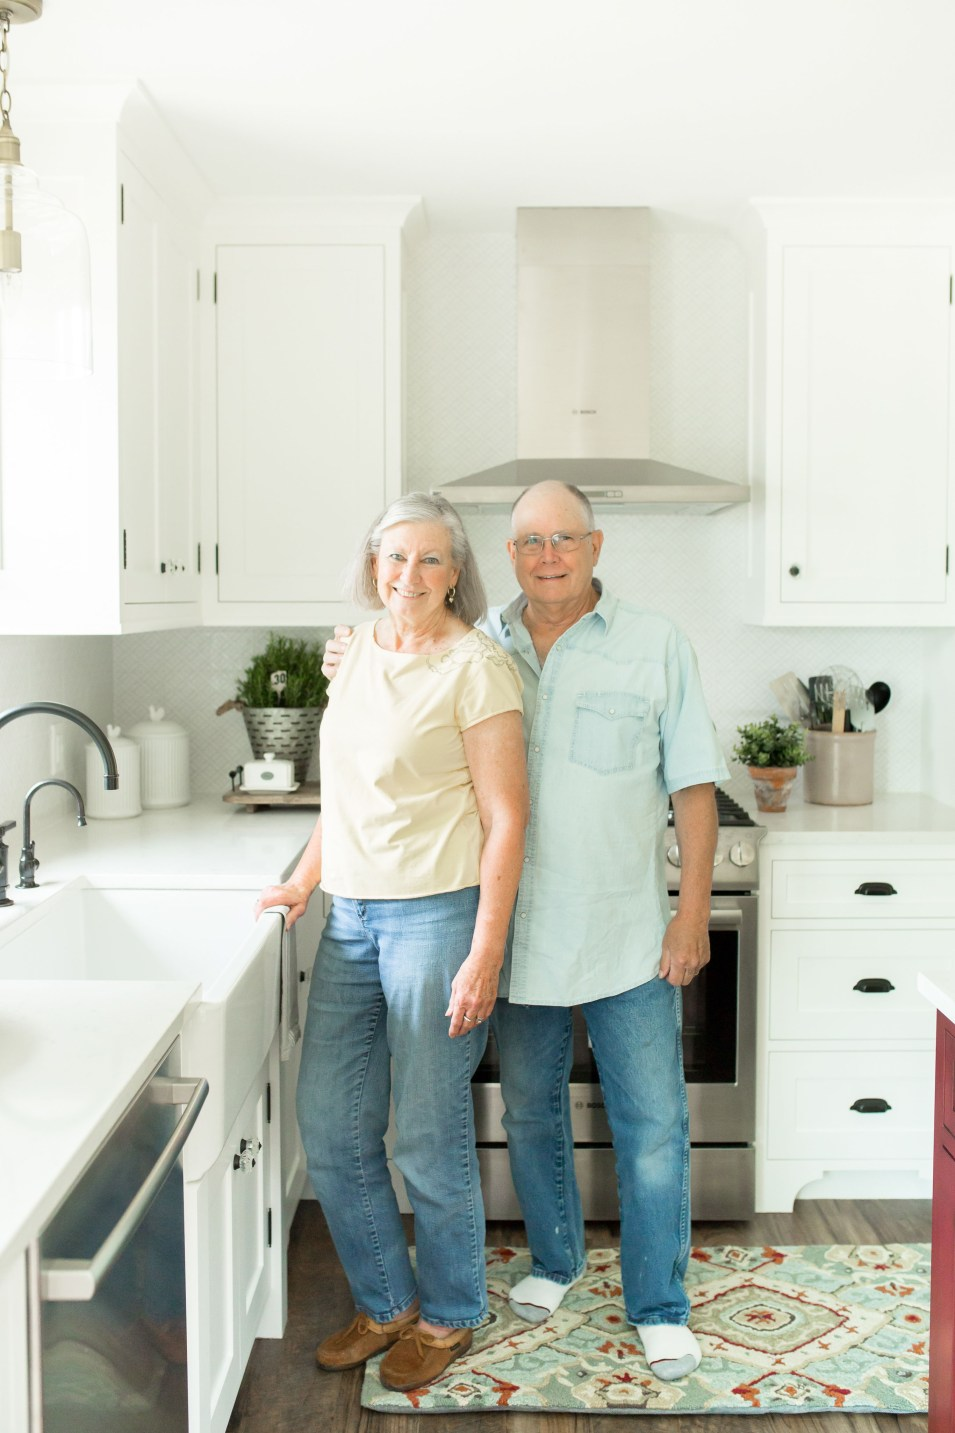 the lyons in their new remodel!